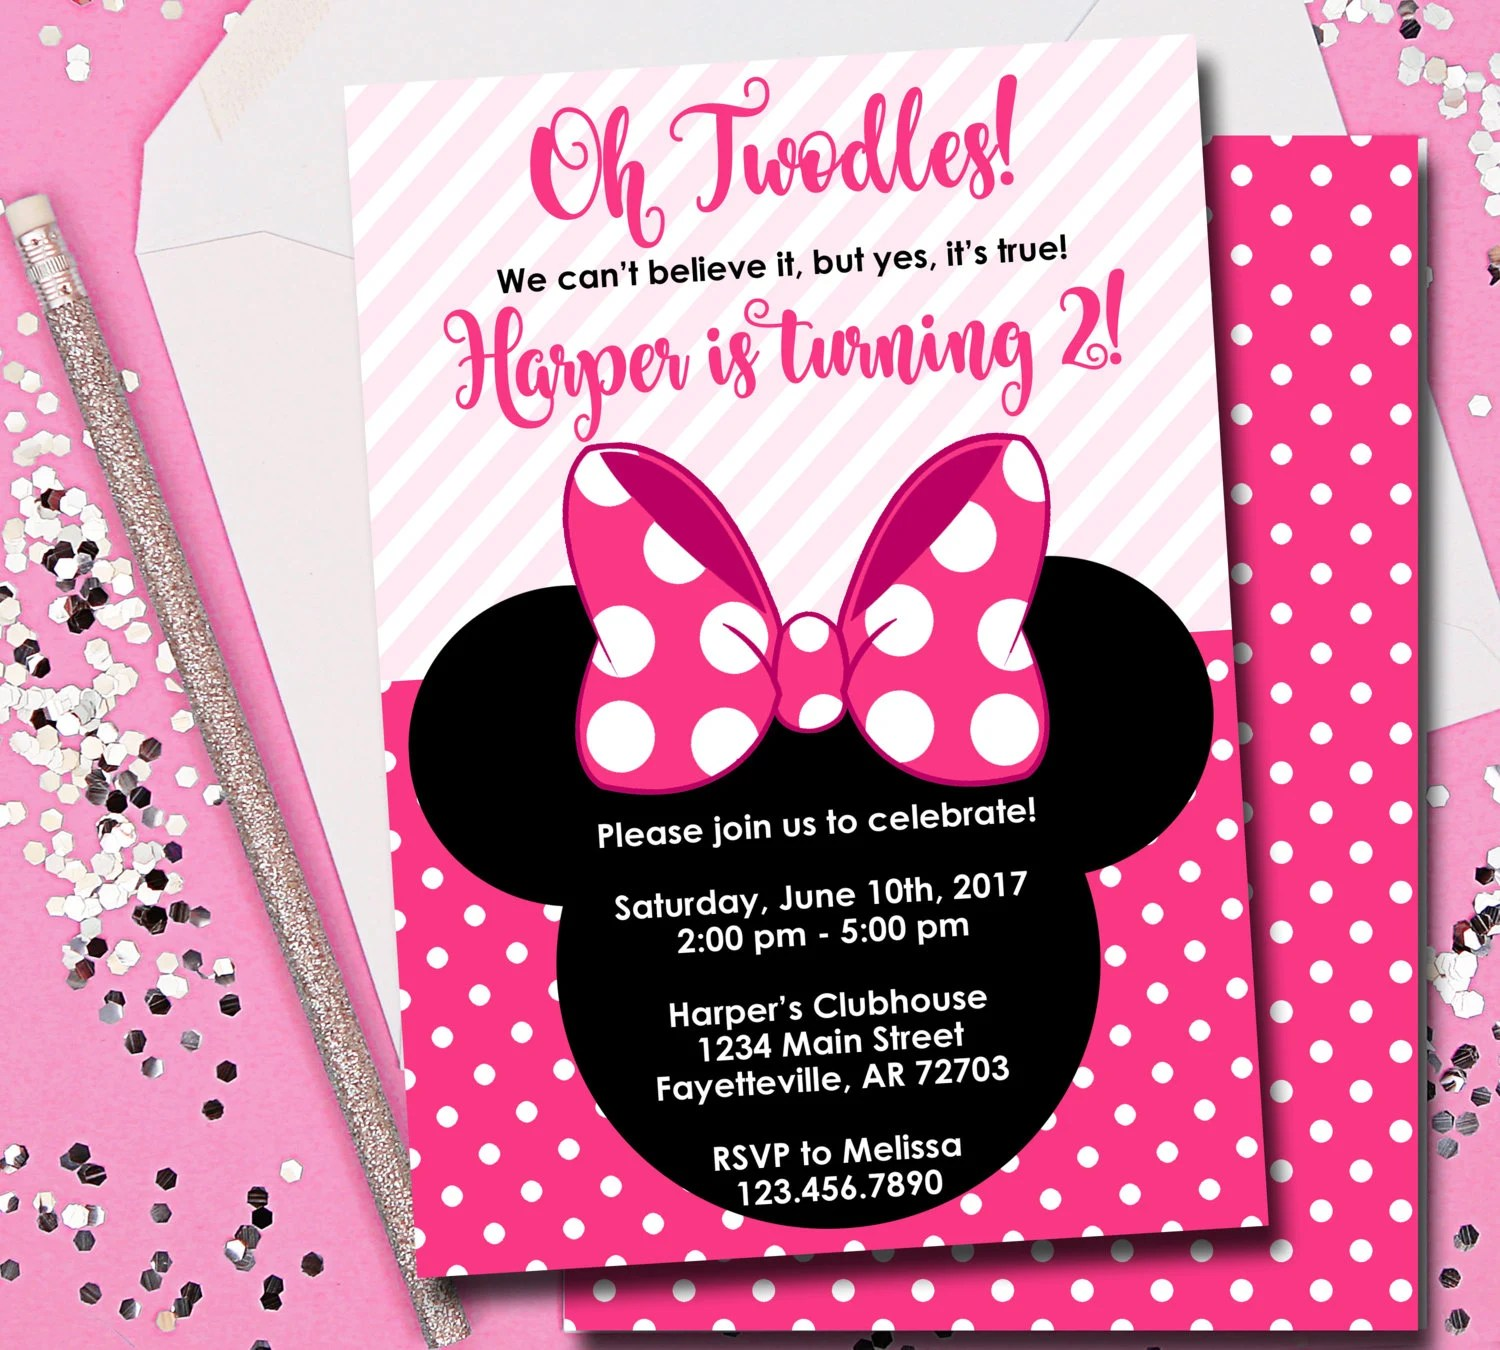 minnie mouse birthday invitation minnie mouse birthday invitation oh twodles birthday invite mickey mouse disney printable 5x7